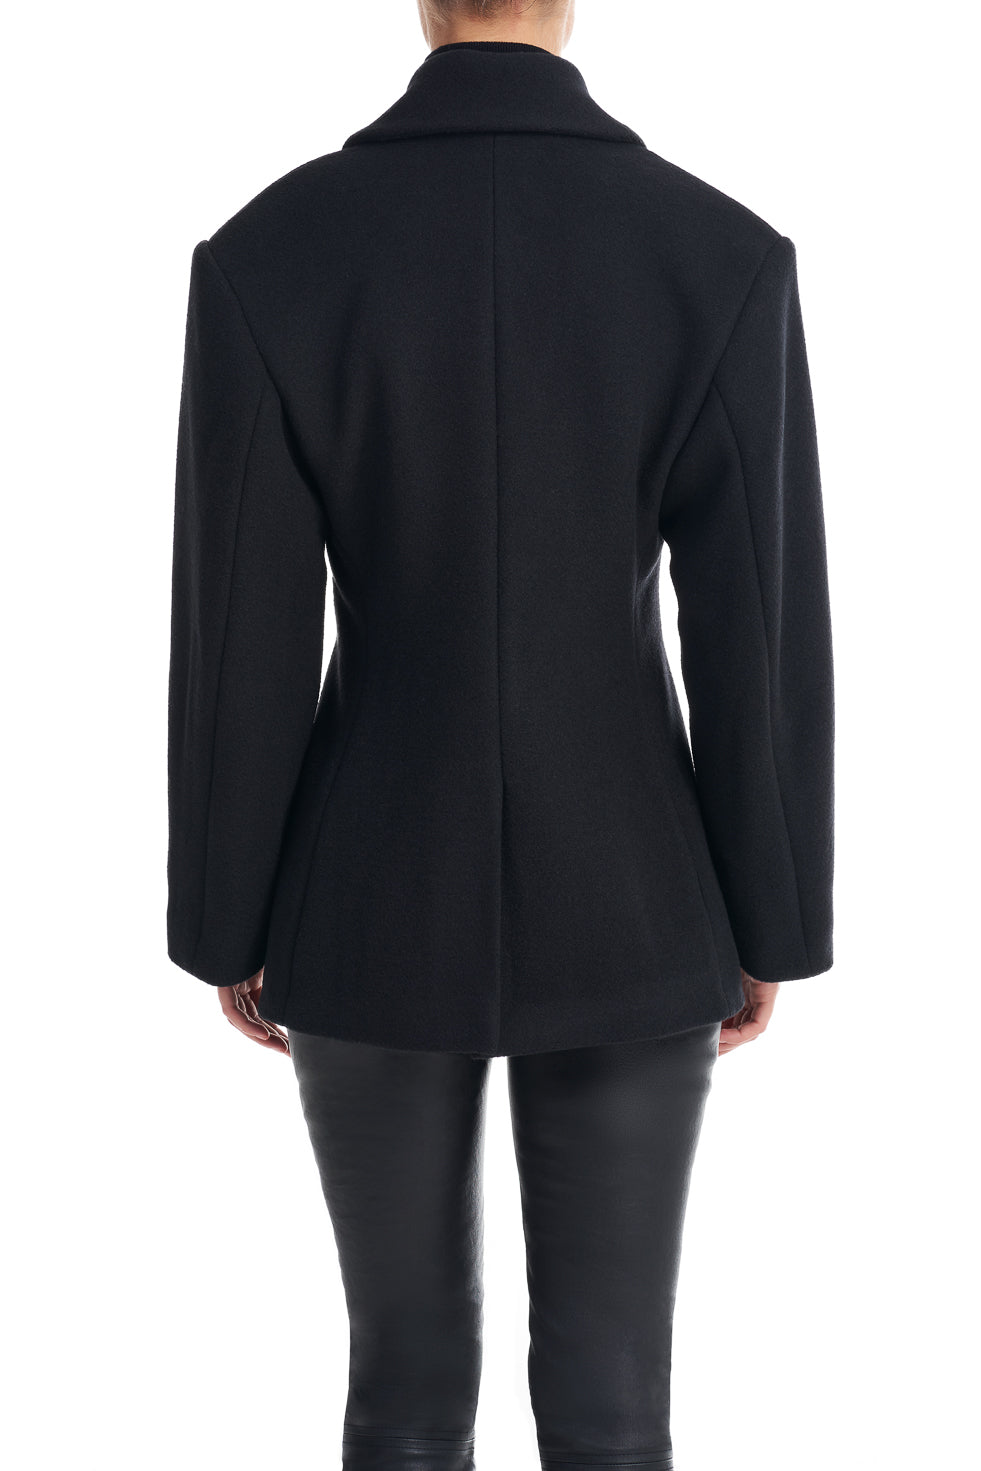 Willow Oversized Single Breasted Hourglass Blazer